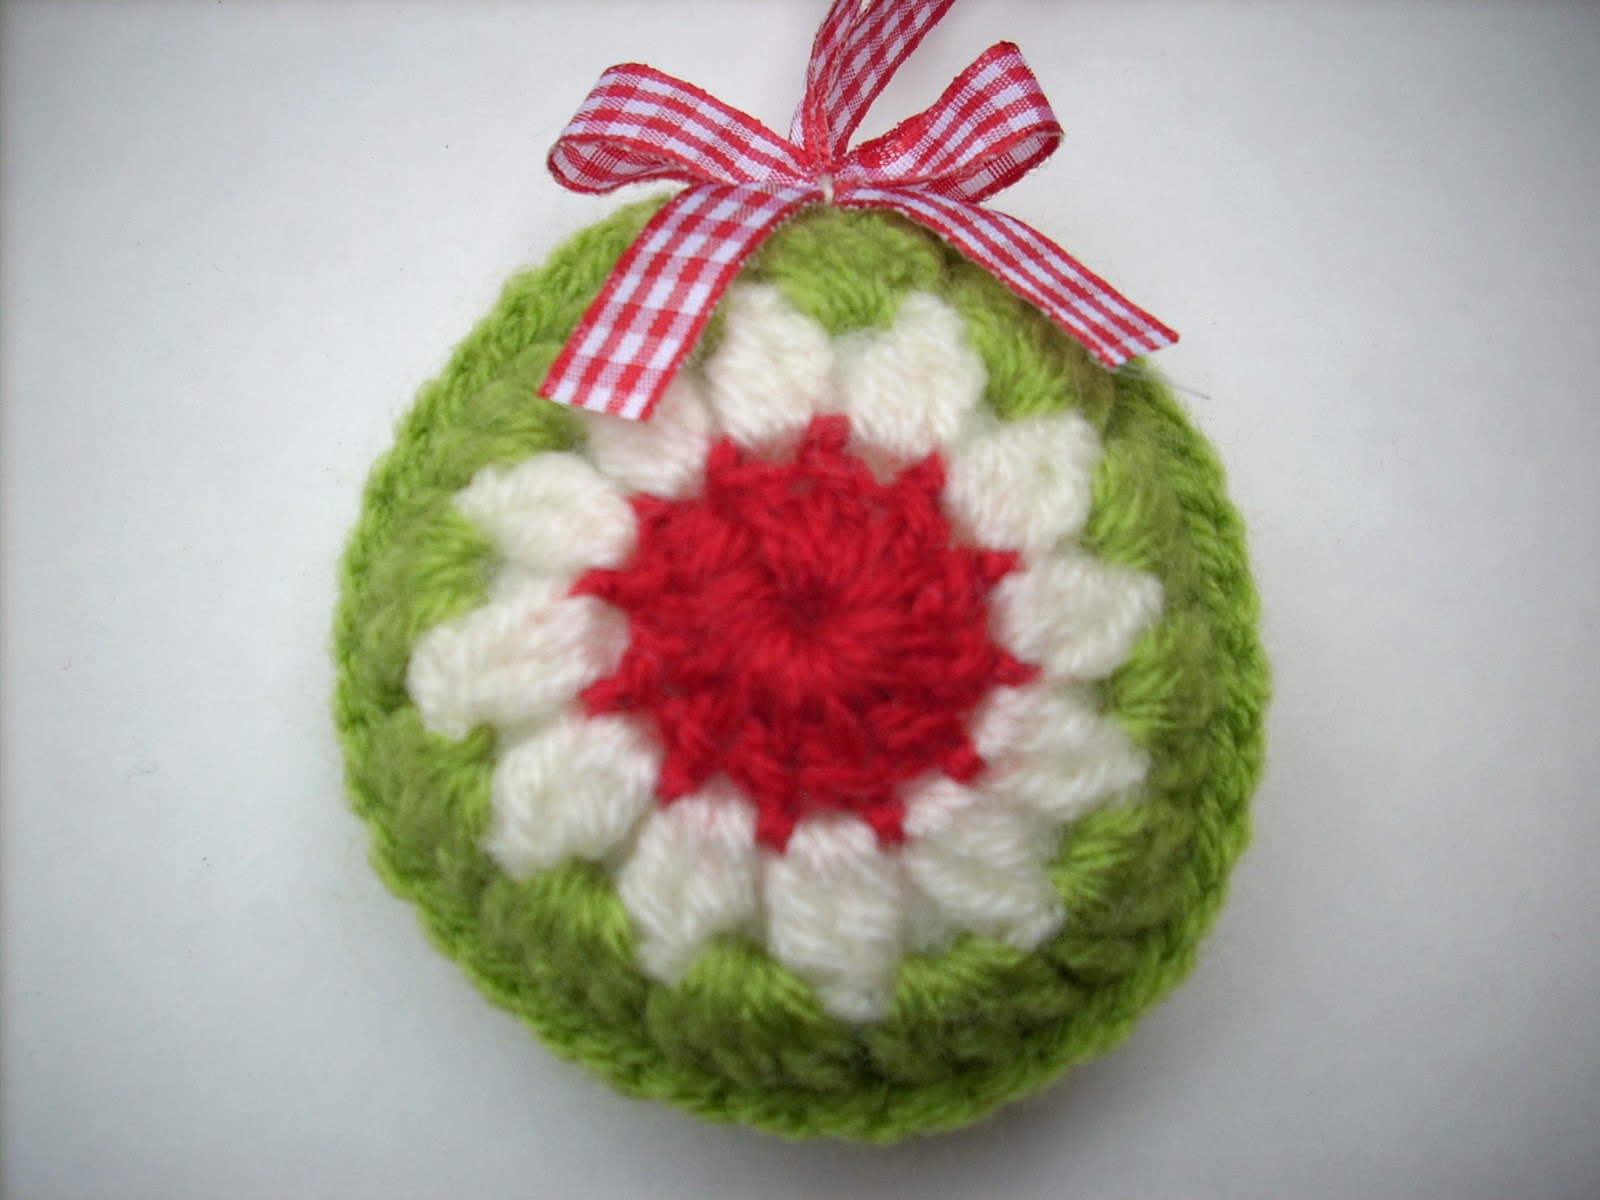 Crochet Ornaments : Scraponique: Gehaakte kerstballen - Crocheted ornaments